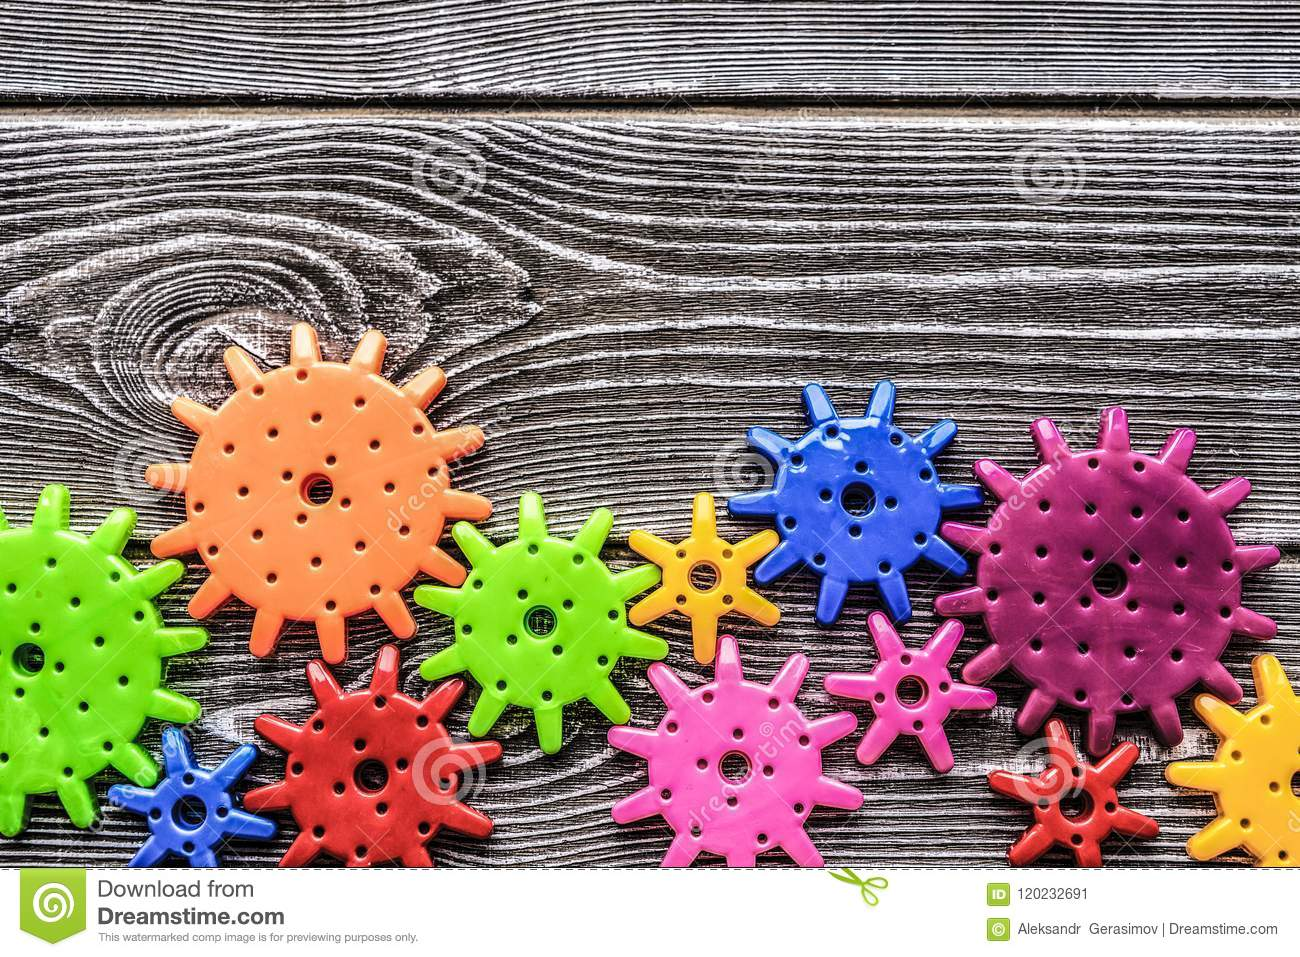 Multi-colored gears on the background